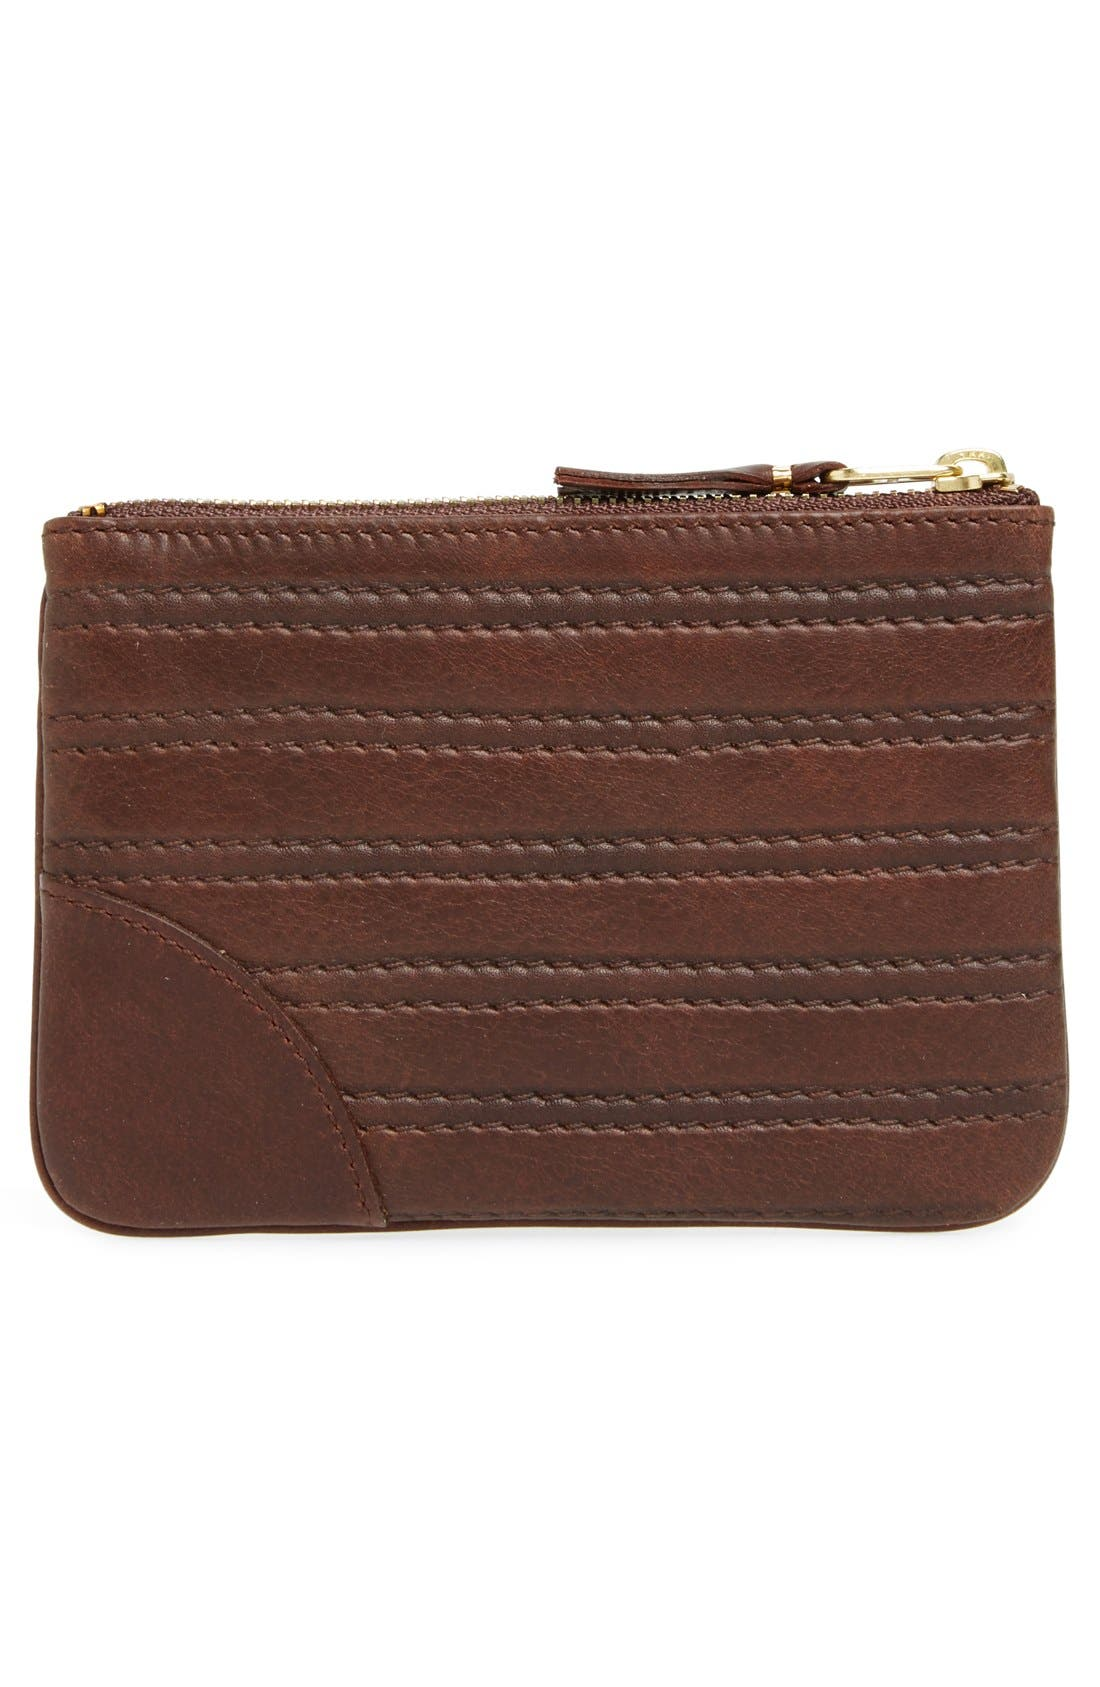 Embossed Leather Top Zip Pouch Wallet,                             Alternate thumbnail 9, color,